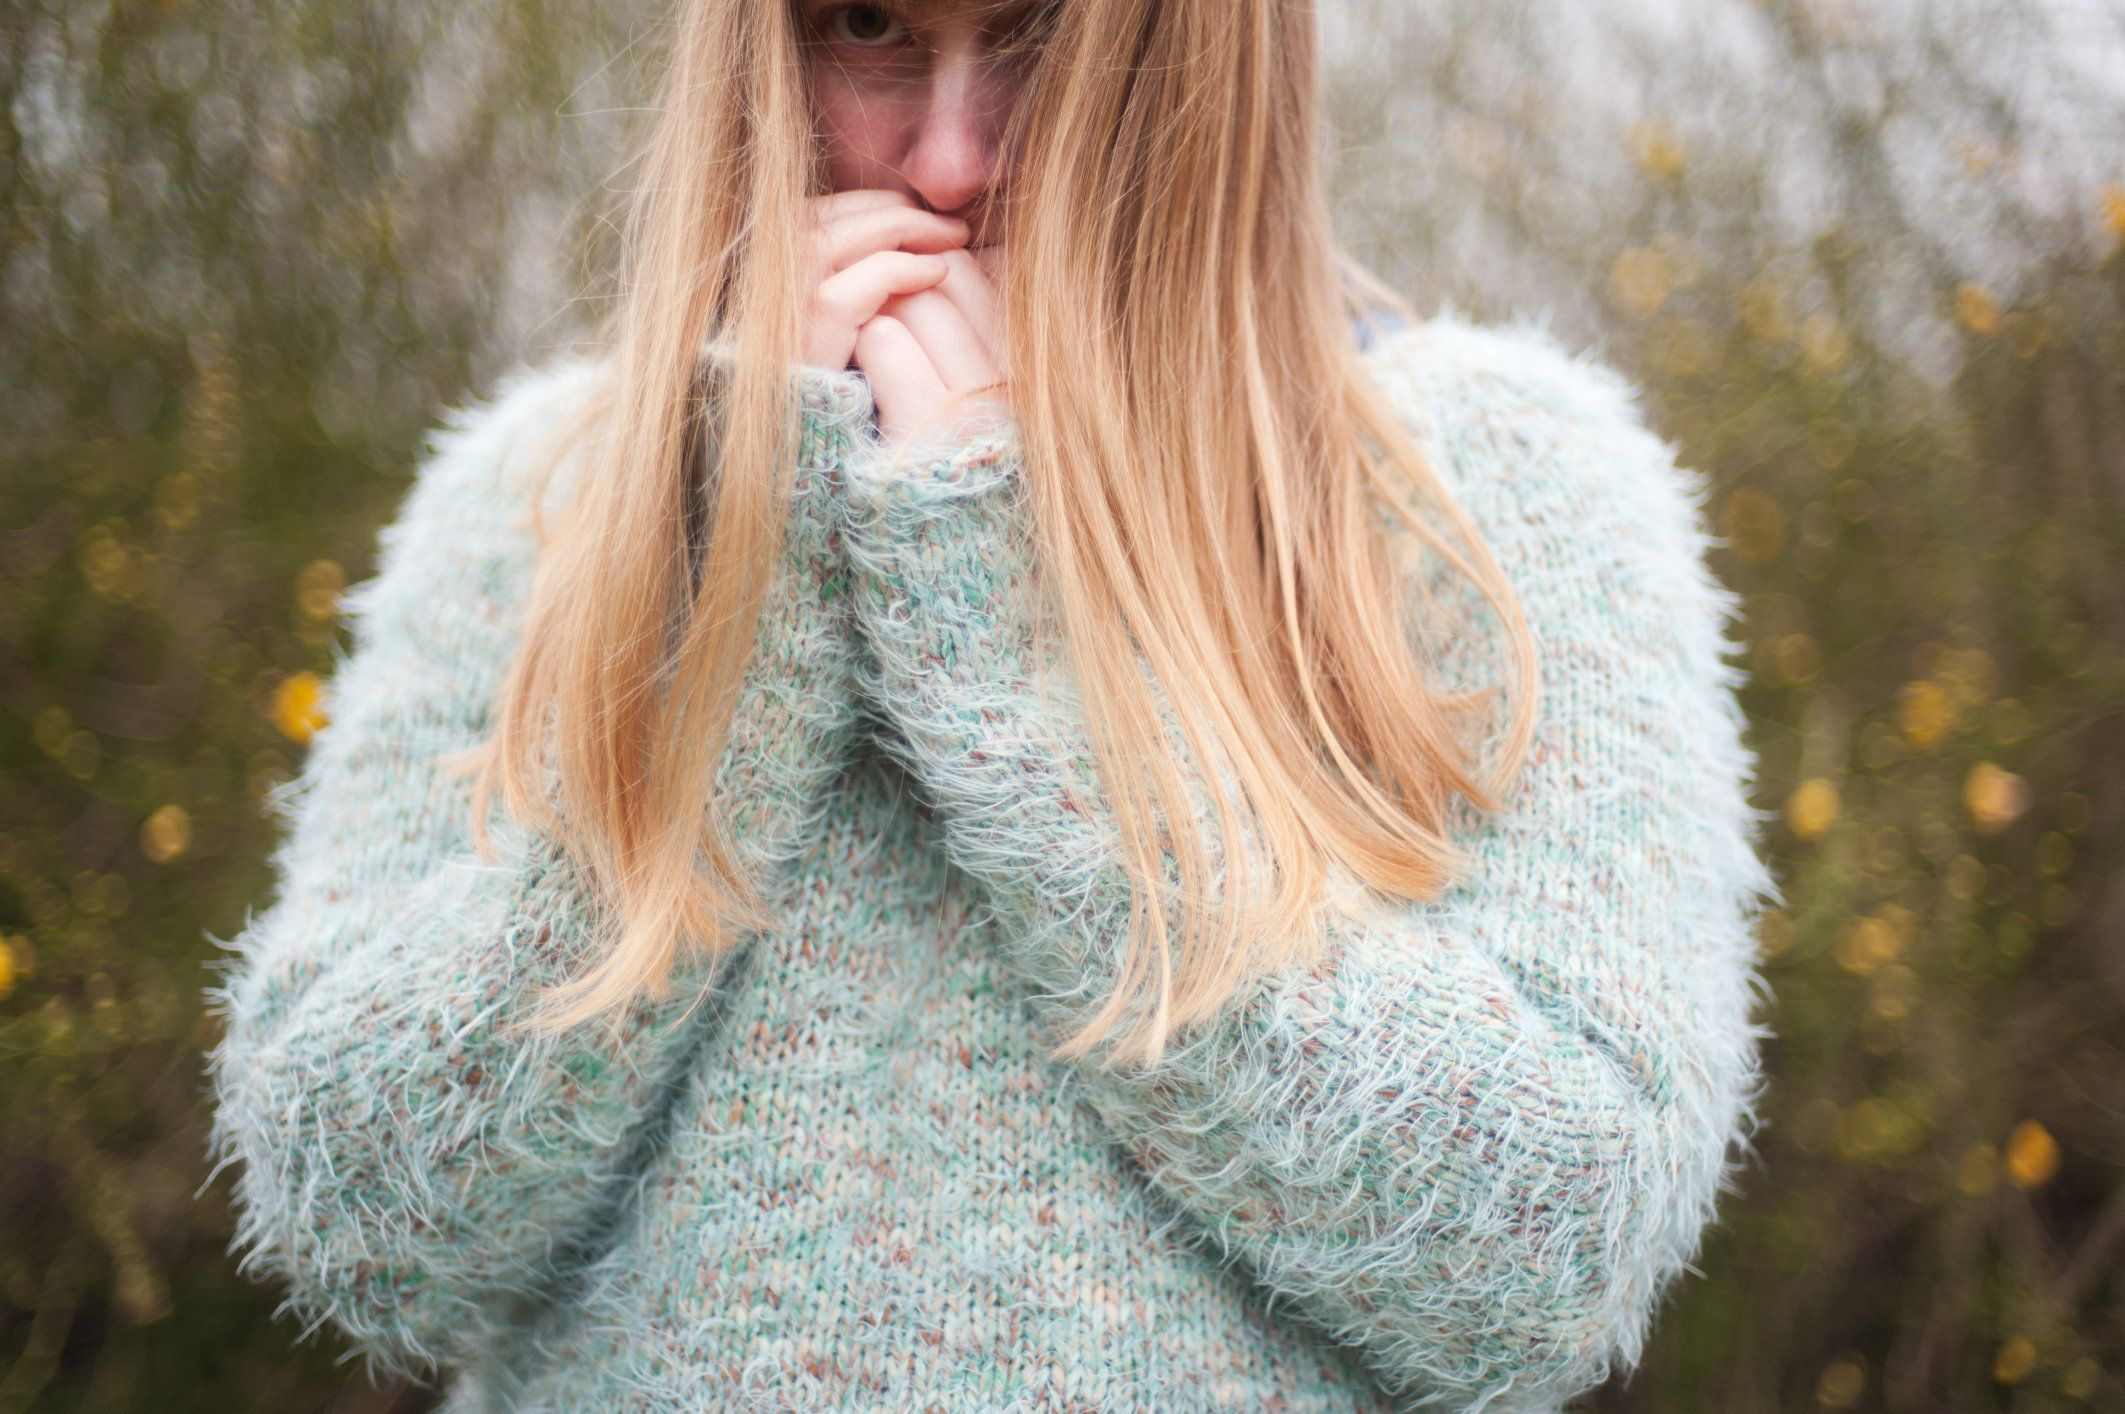 A young blonde woman wearing a fluffy, green jumper, stands outside with her hands in front of her mouth.